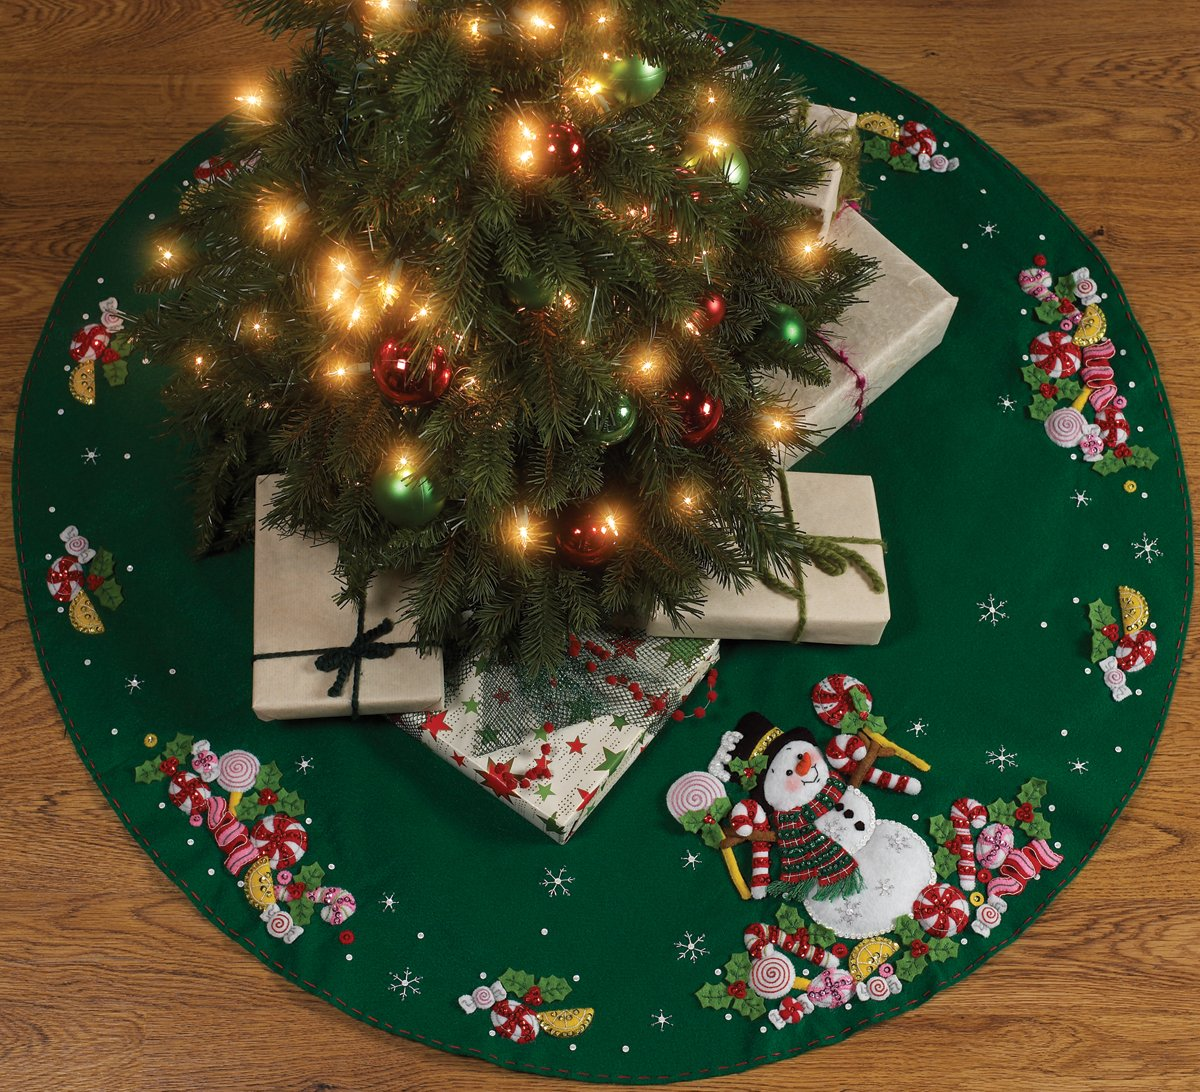 Bucilla Candy Snowman Tree Skirt Felt Applique Kit 43 Round Detailed Designs And Generous Embellishments Easy To Follow Instructions Everything You Will